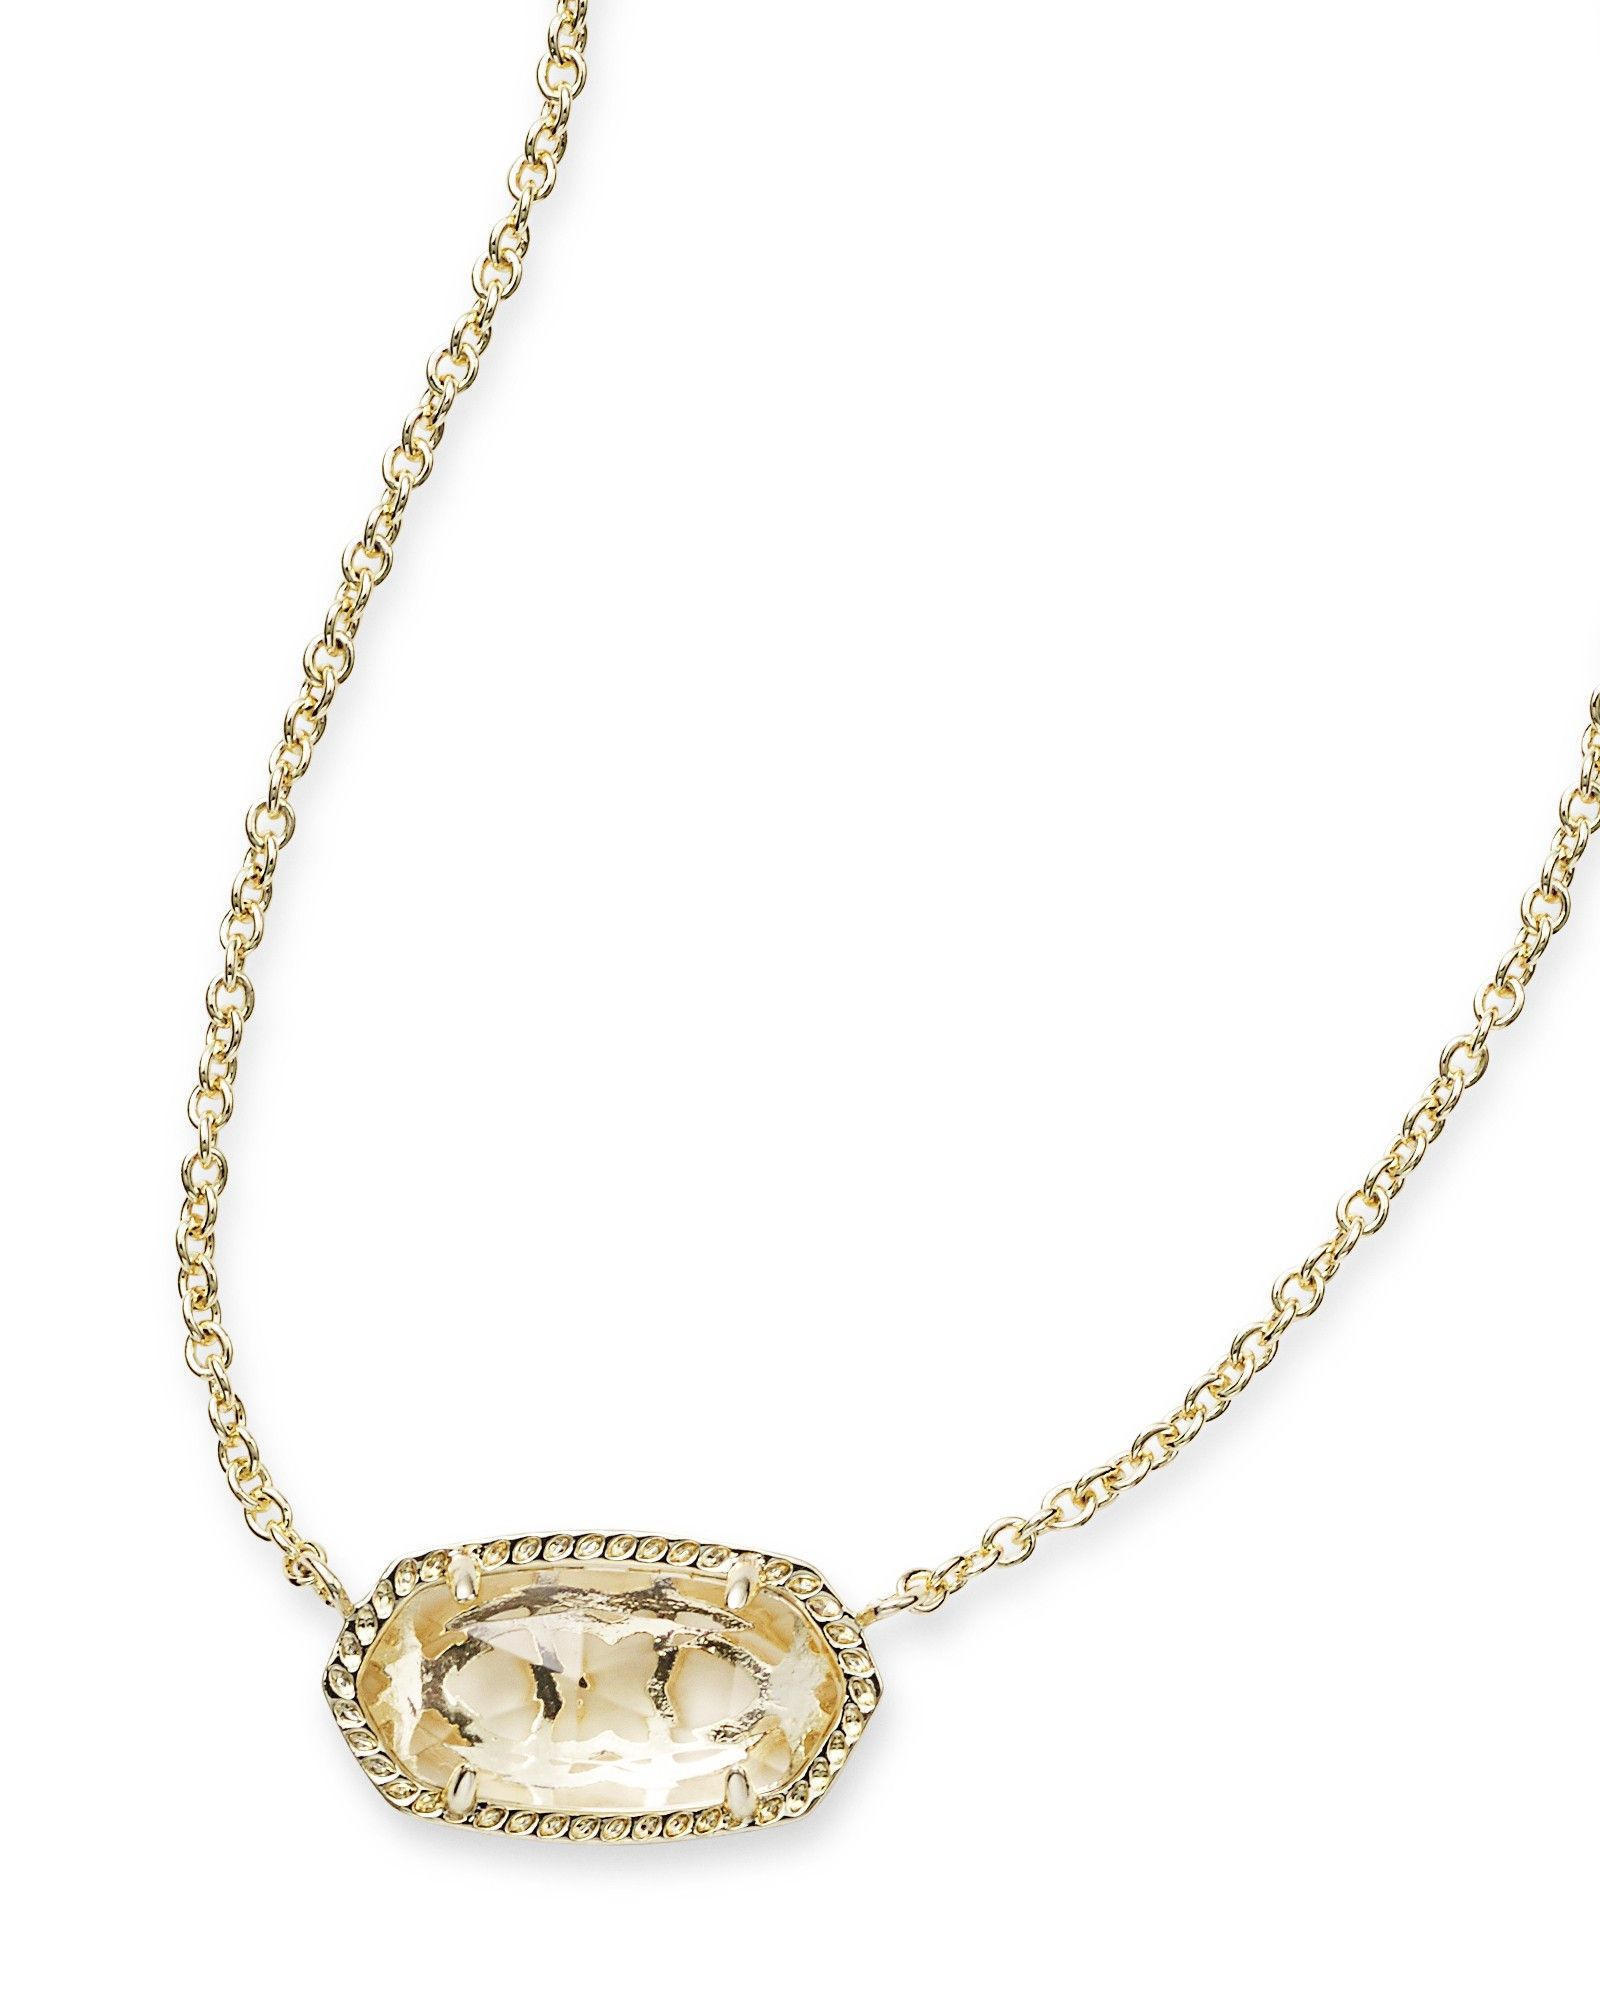 Kendra scott elisa pendant necklace in clear crystal crystals